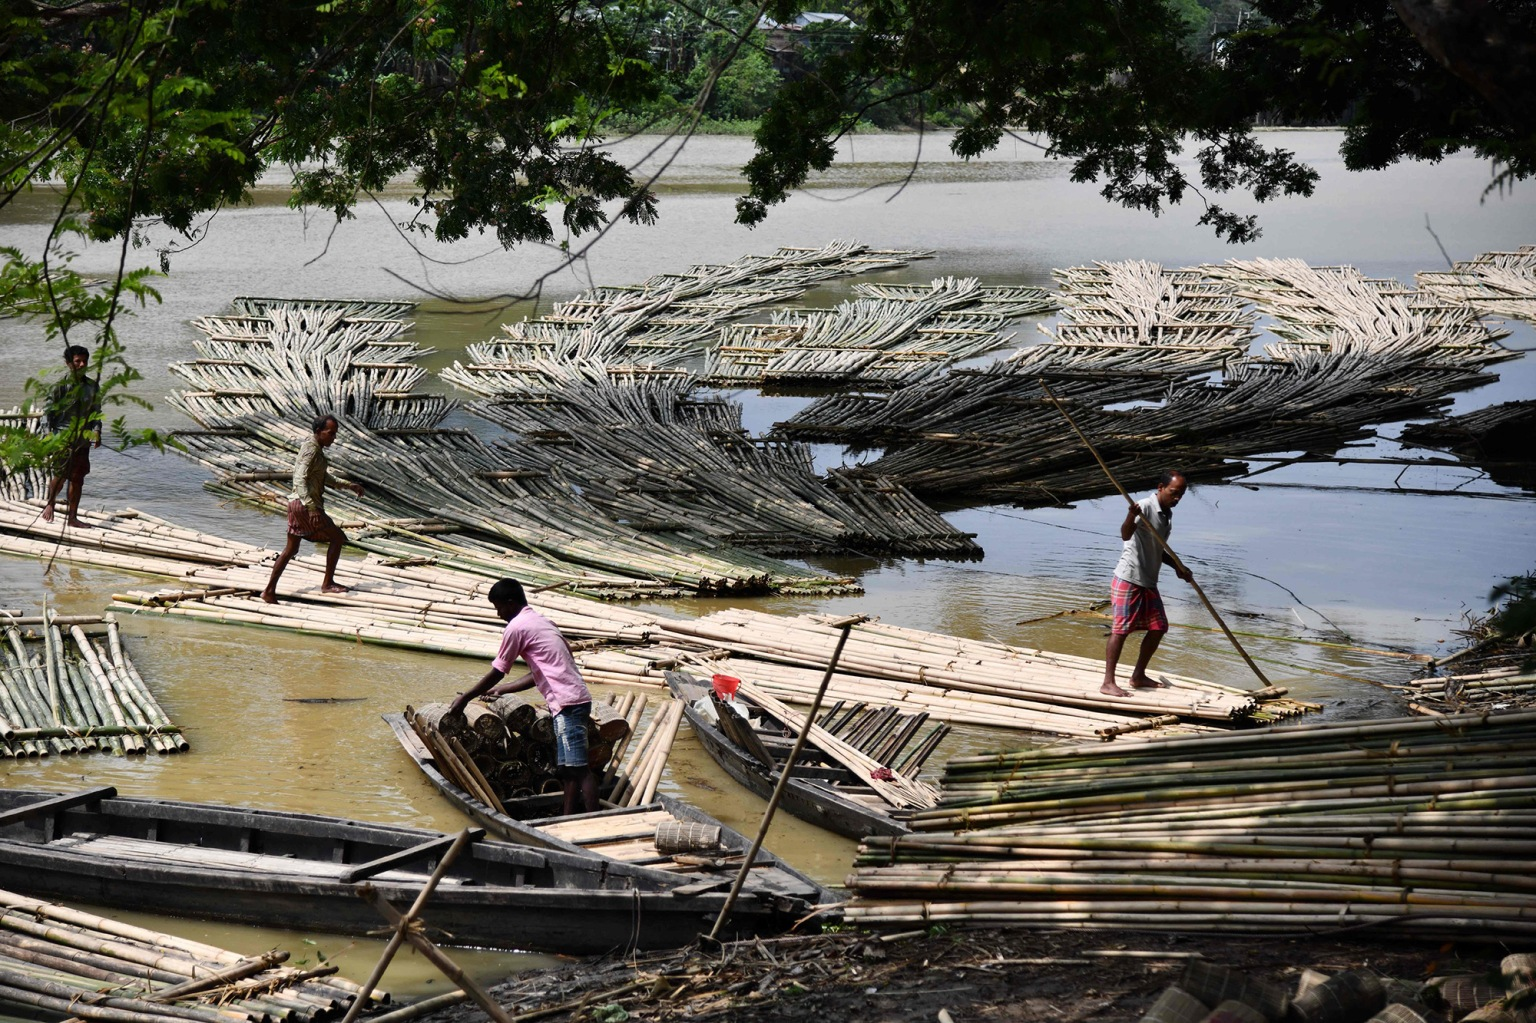 Laborers push heaps of bamboo along the Howrah River to be used in the construction industry and sold at a floating market in Chakmaghat, India, a village north of the capital of the northeastern state of Tripura on April 23. BIJU BORO/AFP/Getty Images